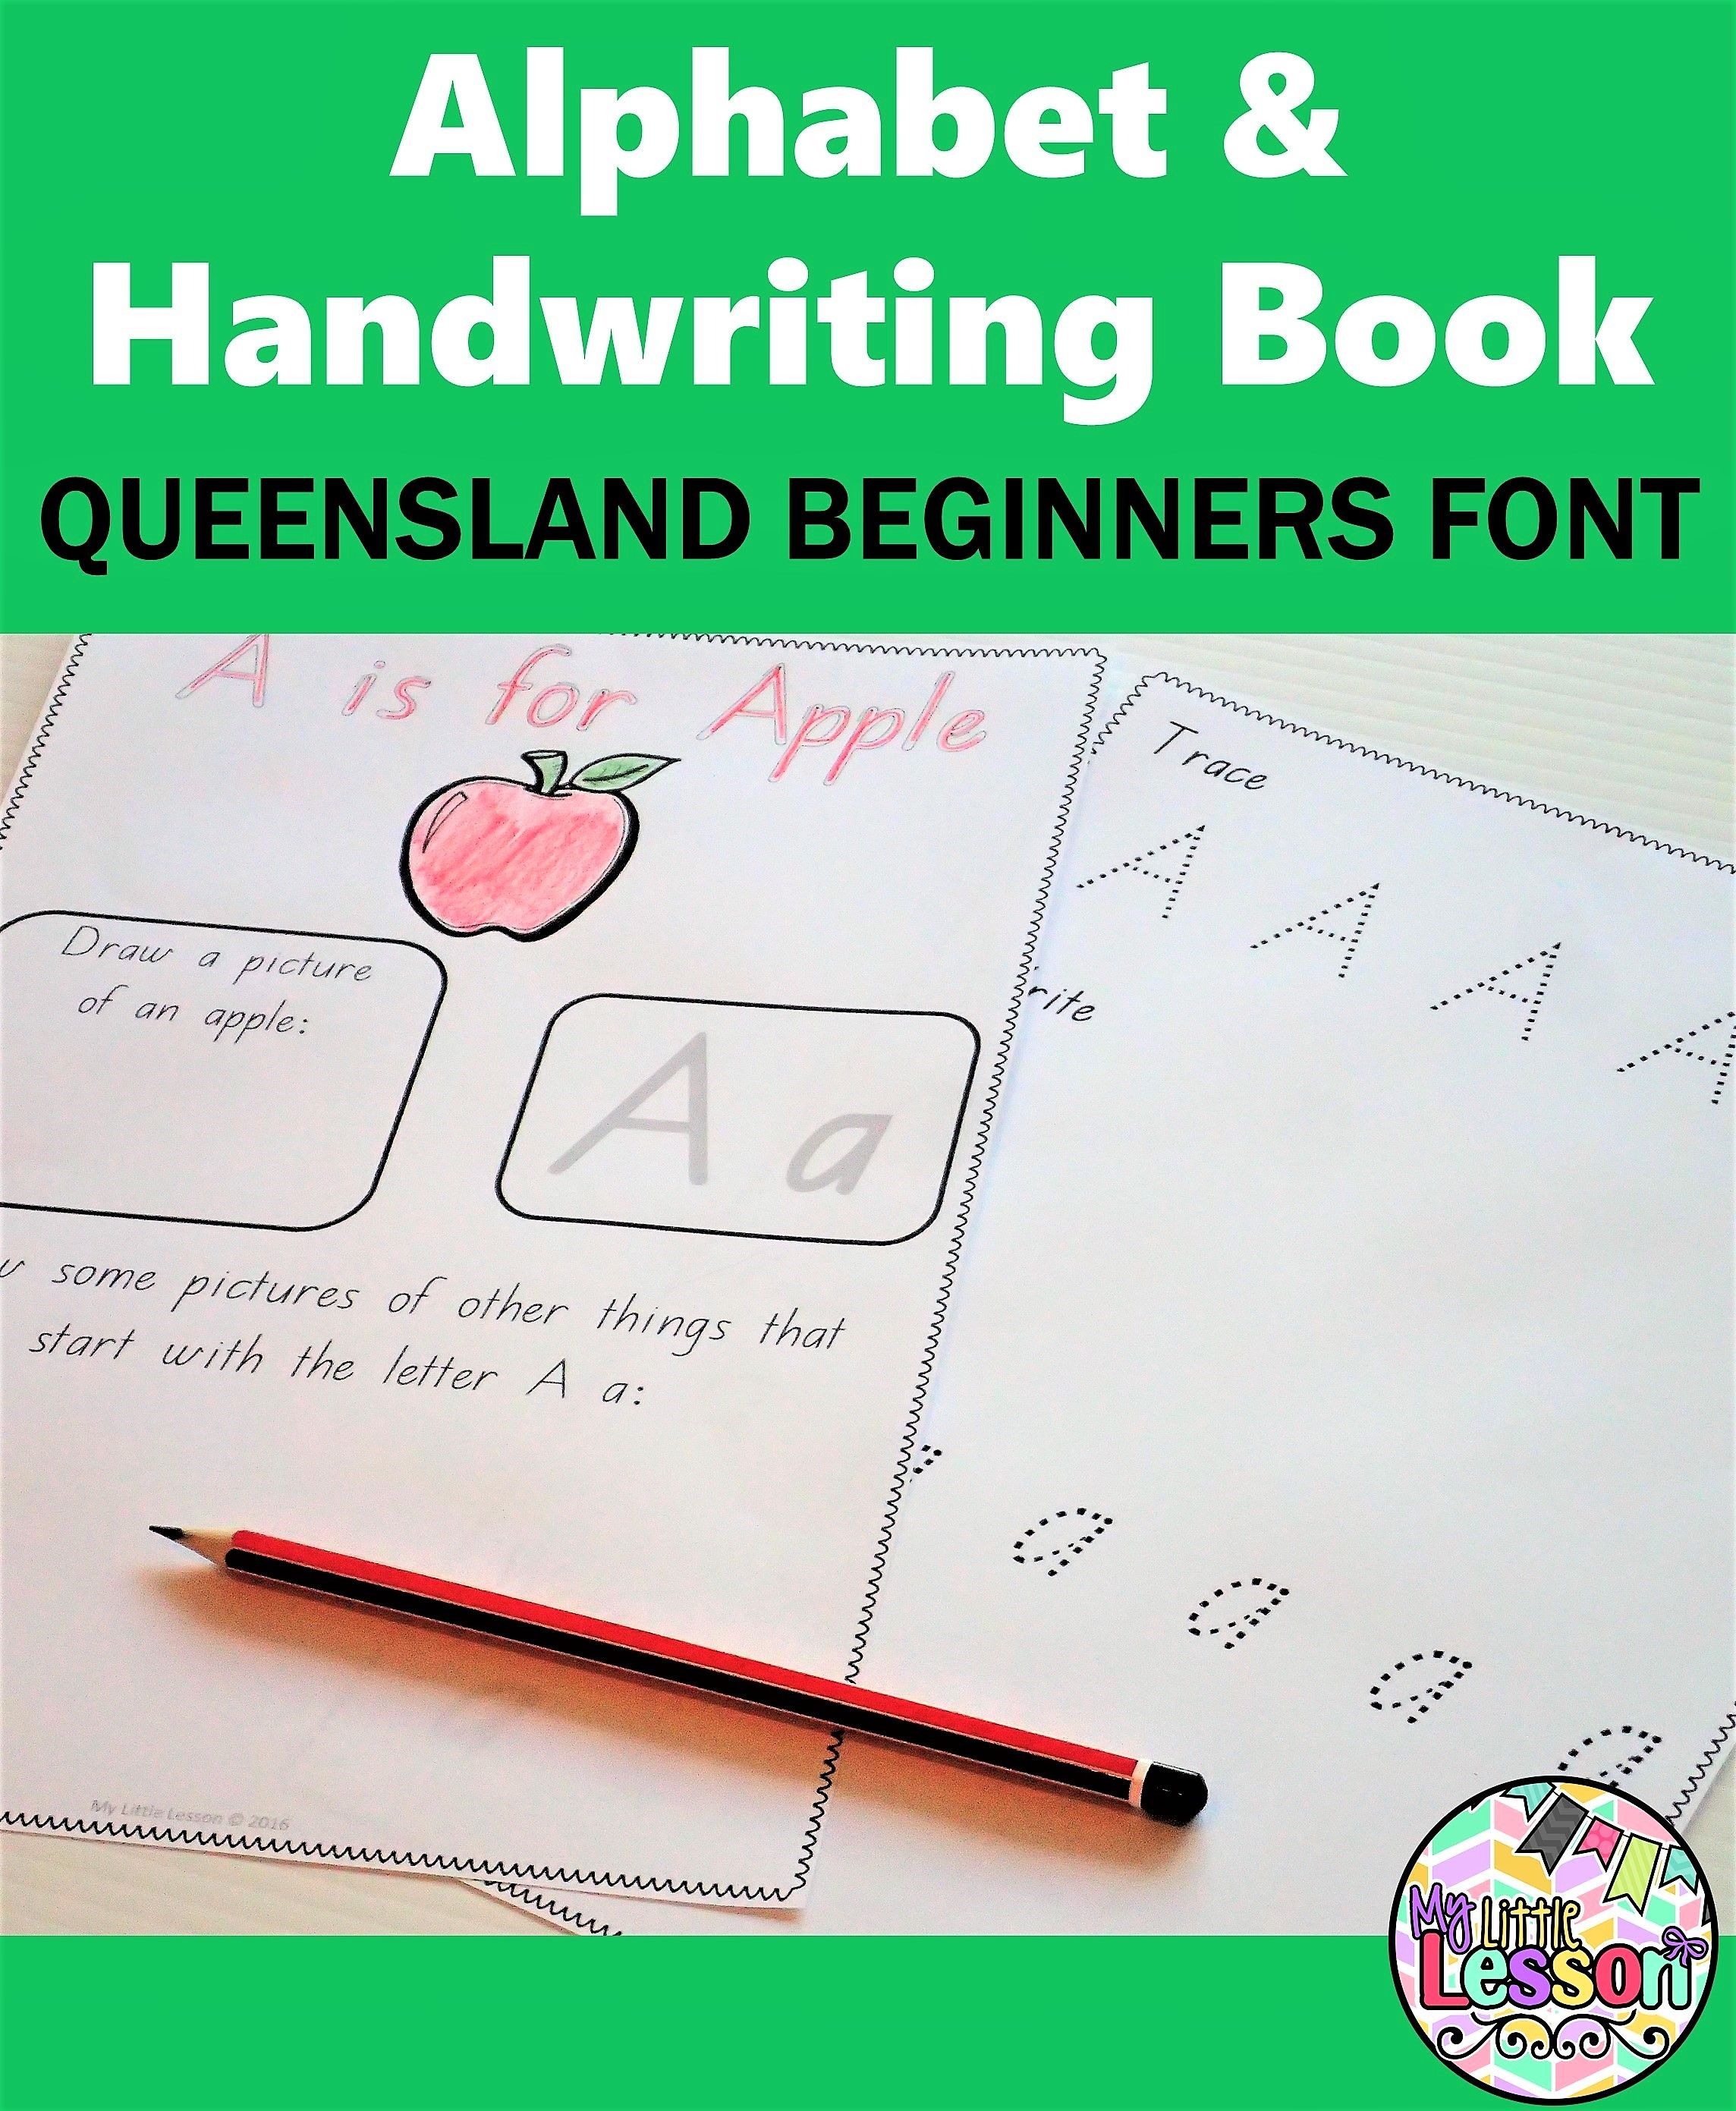 This Qld Prep Alphabet And Handwriting Book Has Been Created Using The Queensland Beginners Font And Is Suitab Handwriting Books Learning Letters Alphabet Book [ 2782 x 2288 Pixel ]